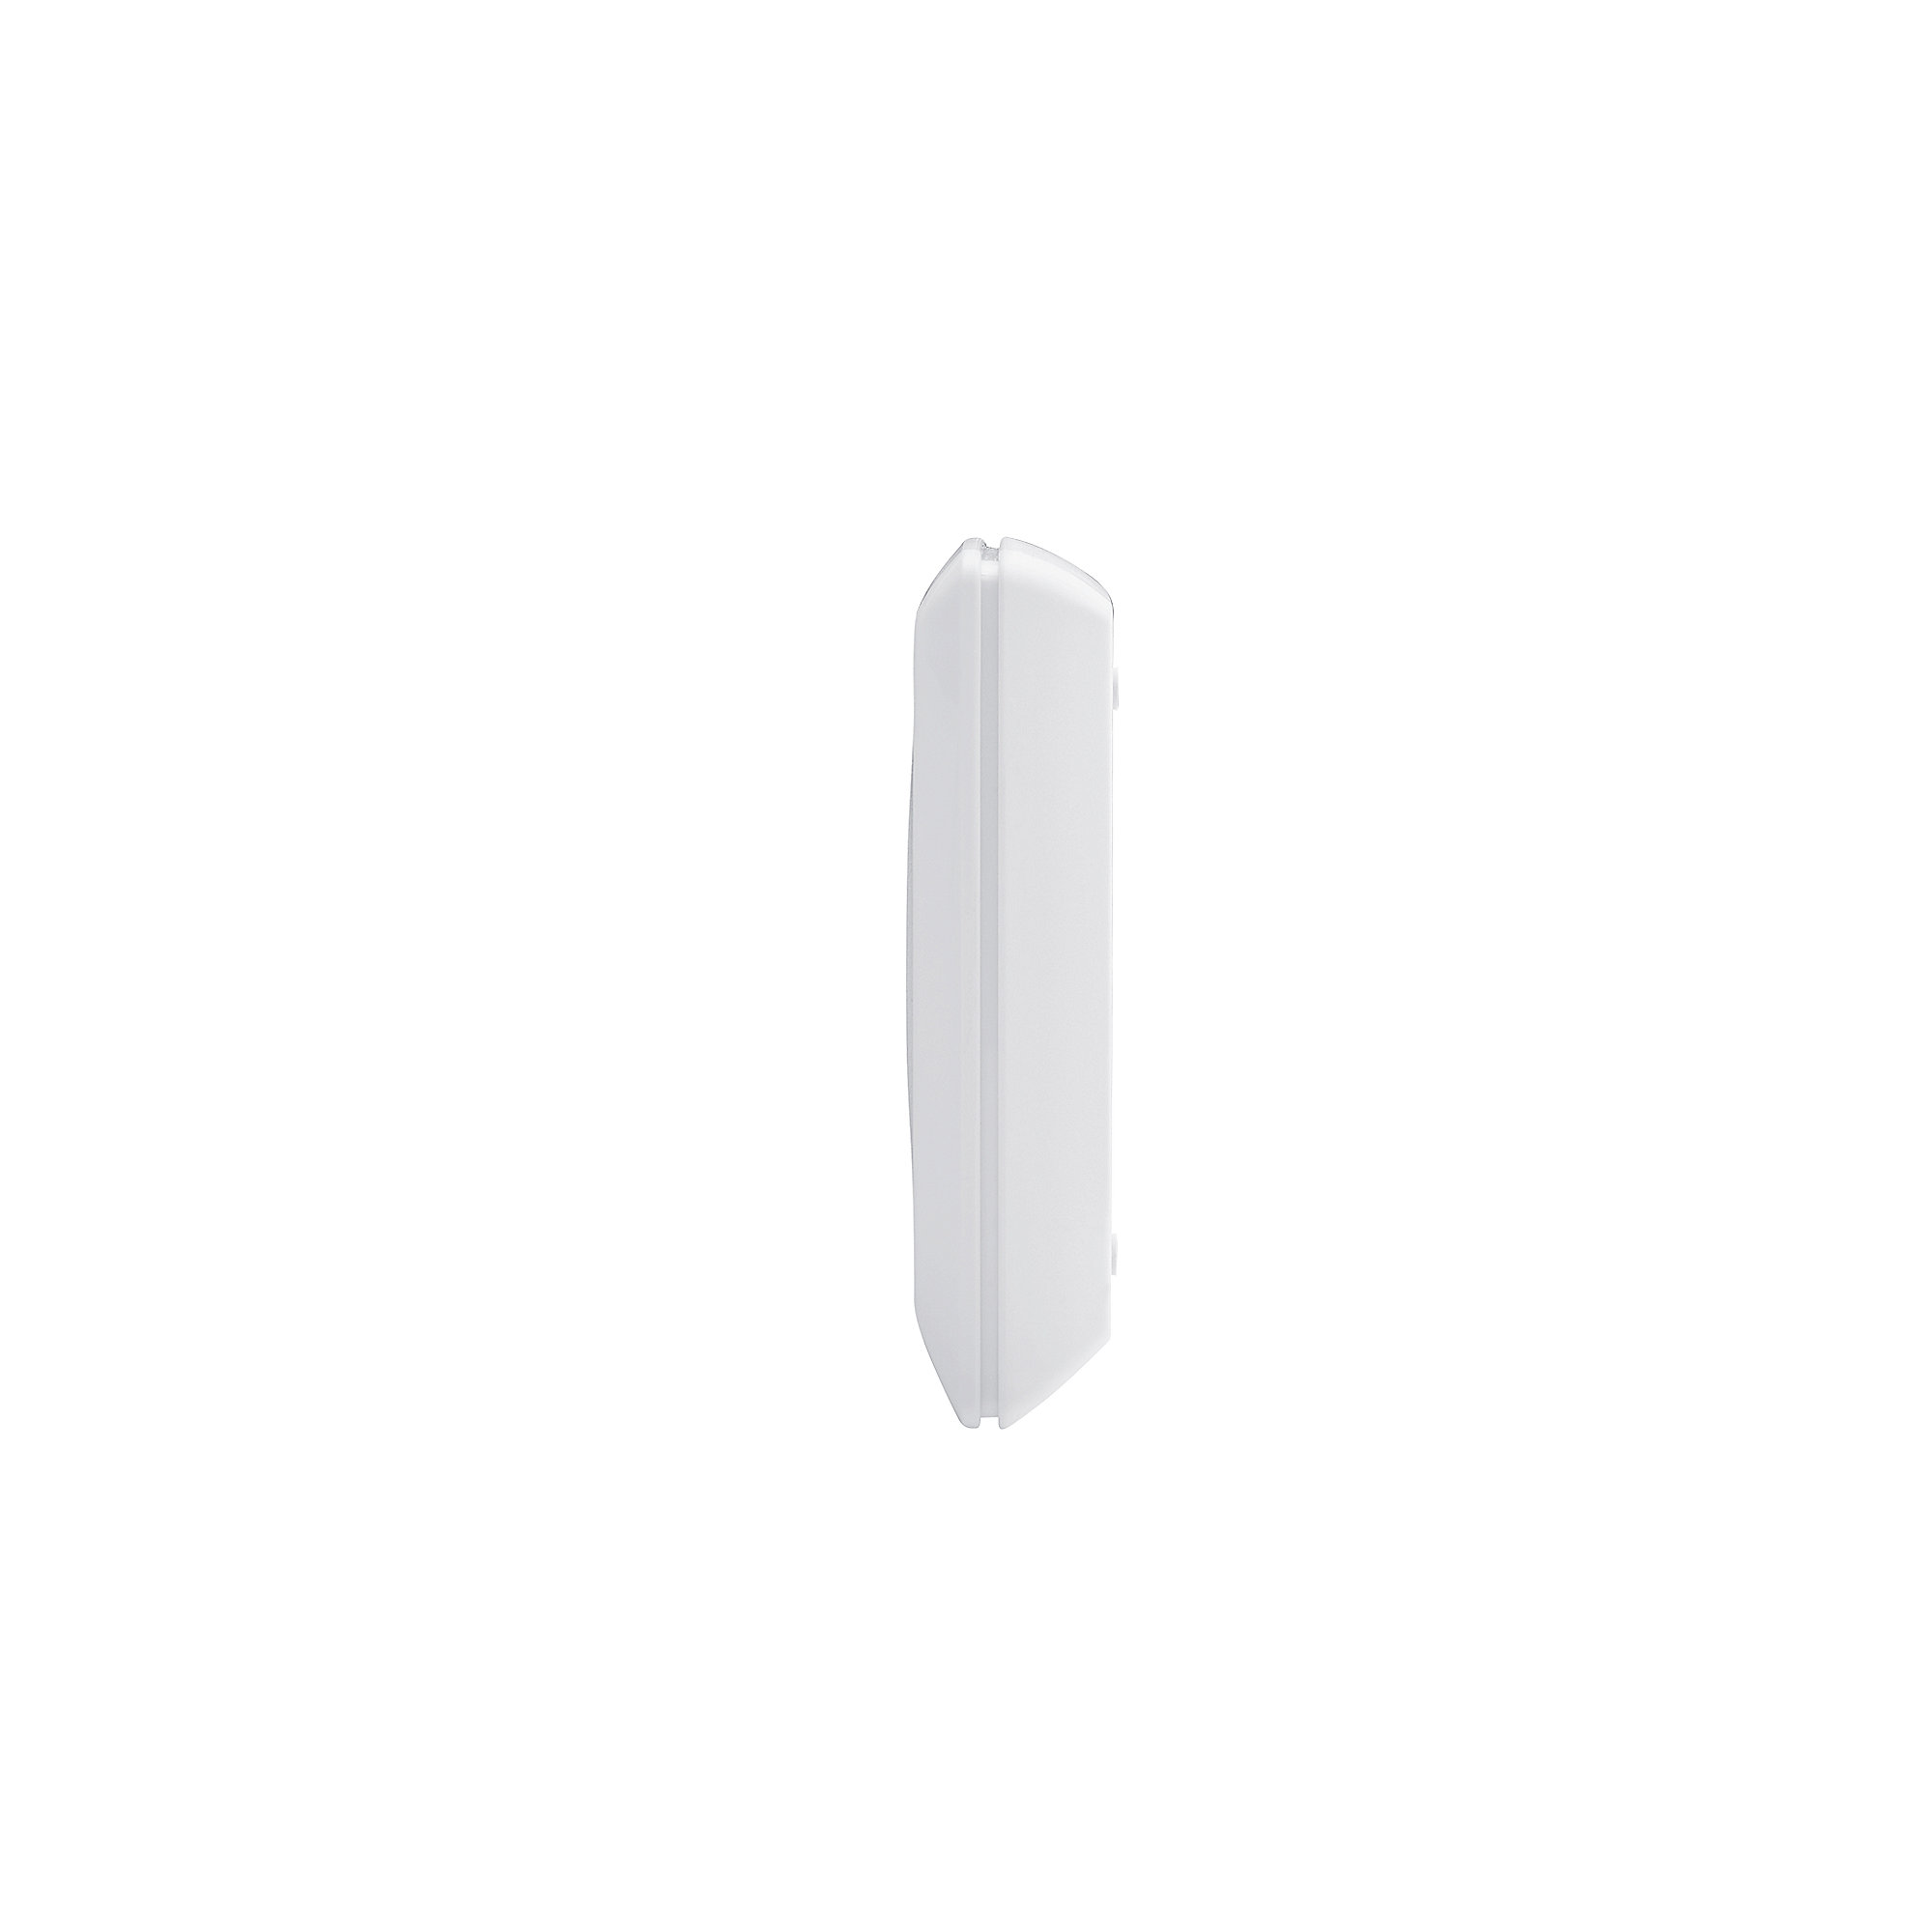 Homematic IP Home Control Access Point HMIP-HAP Smart Home Zentrale